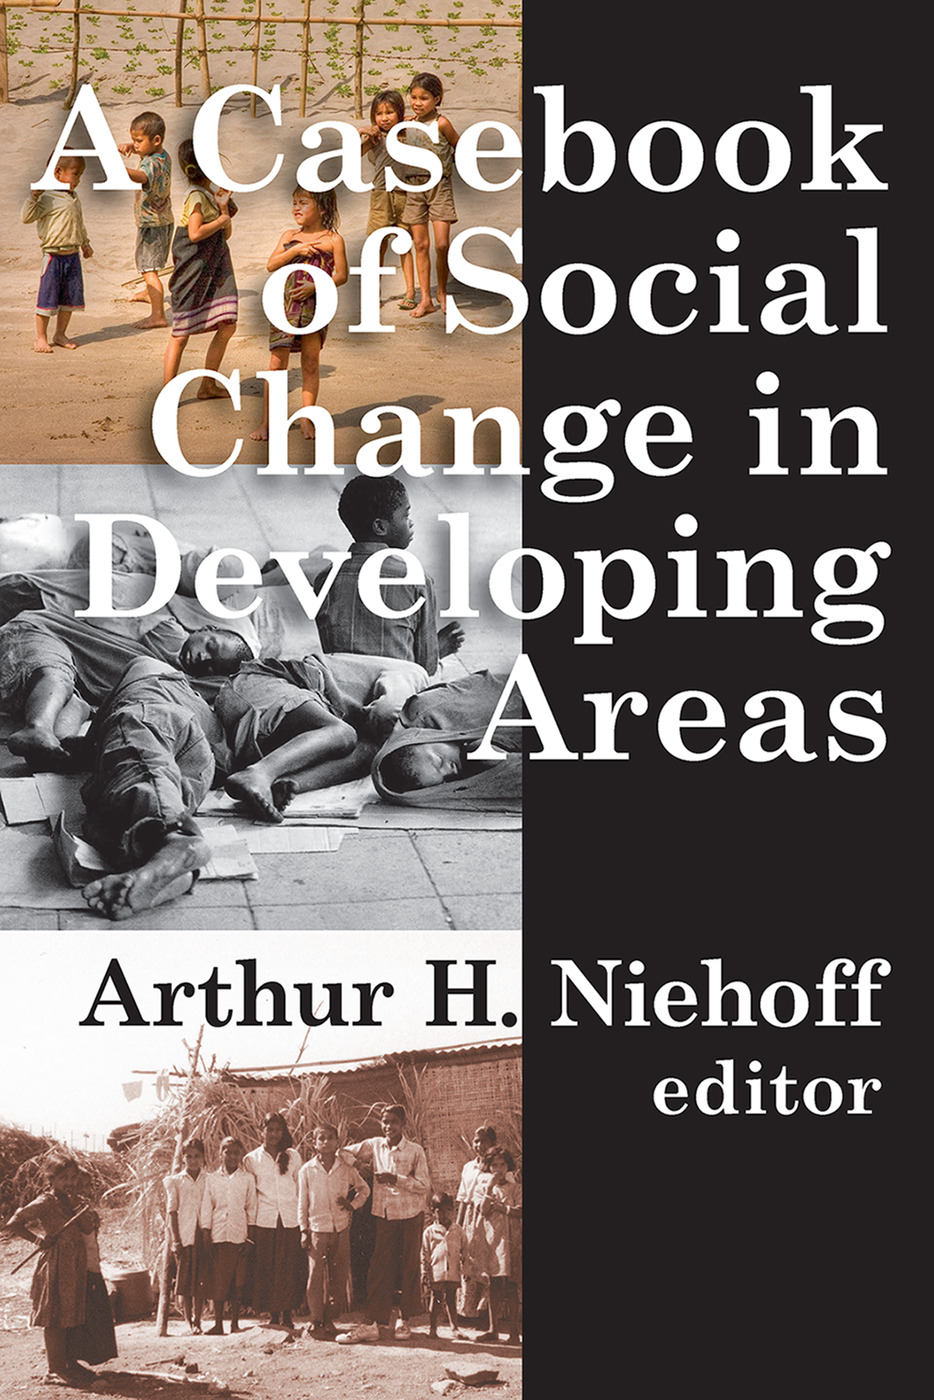 Casebook of Social Change in Developing Areas: 1st Edition (Paperback) book cover